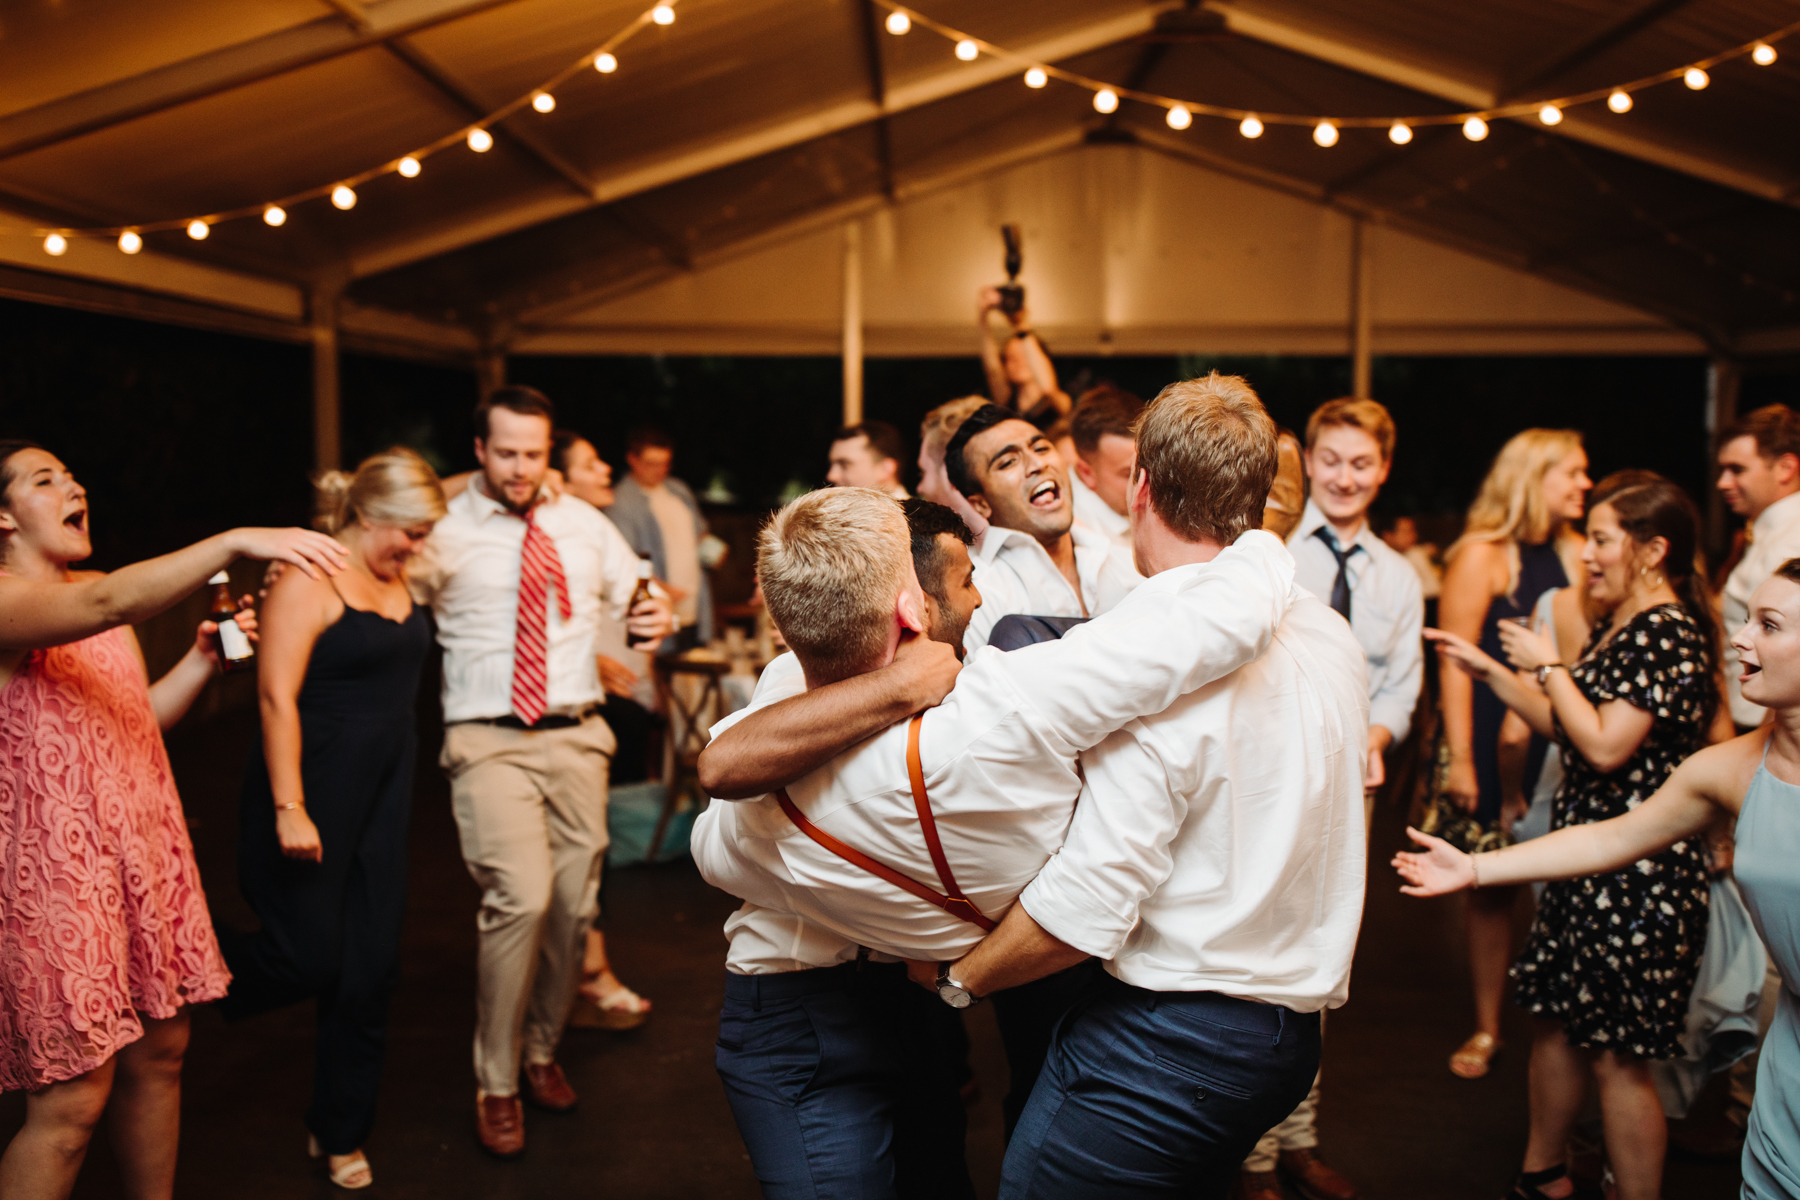 groom being carried off the dance floor at a reception of a Sunny summer wedding at Dara's Garden in Knoxville, Tennessee